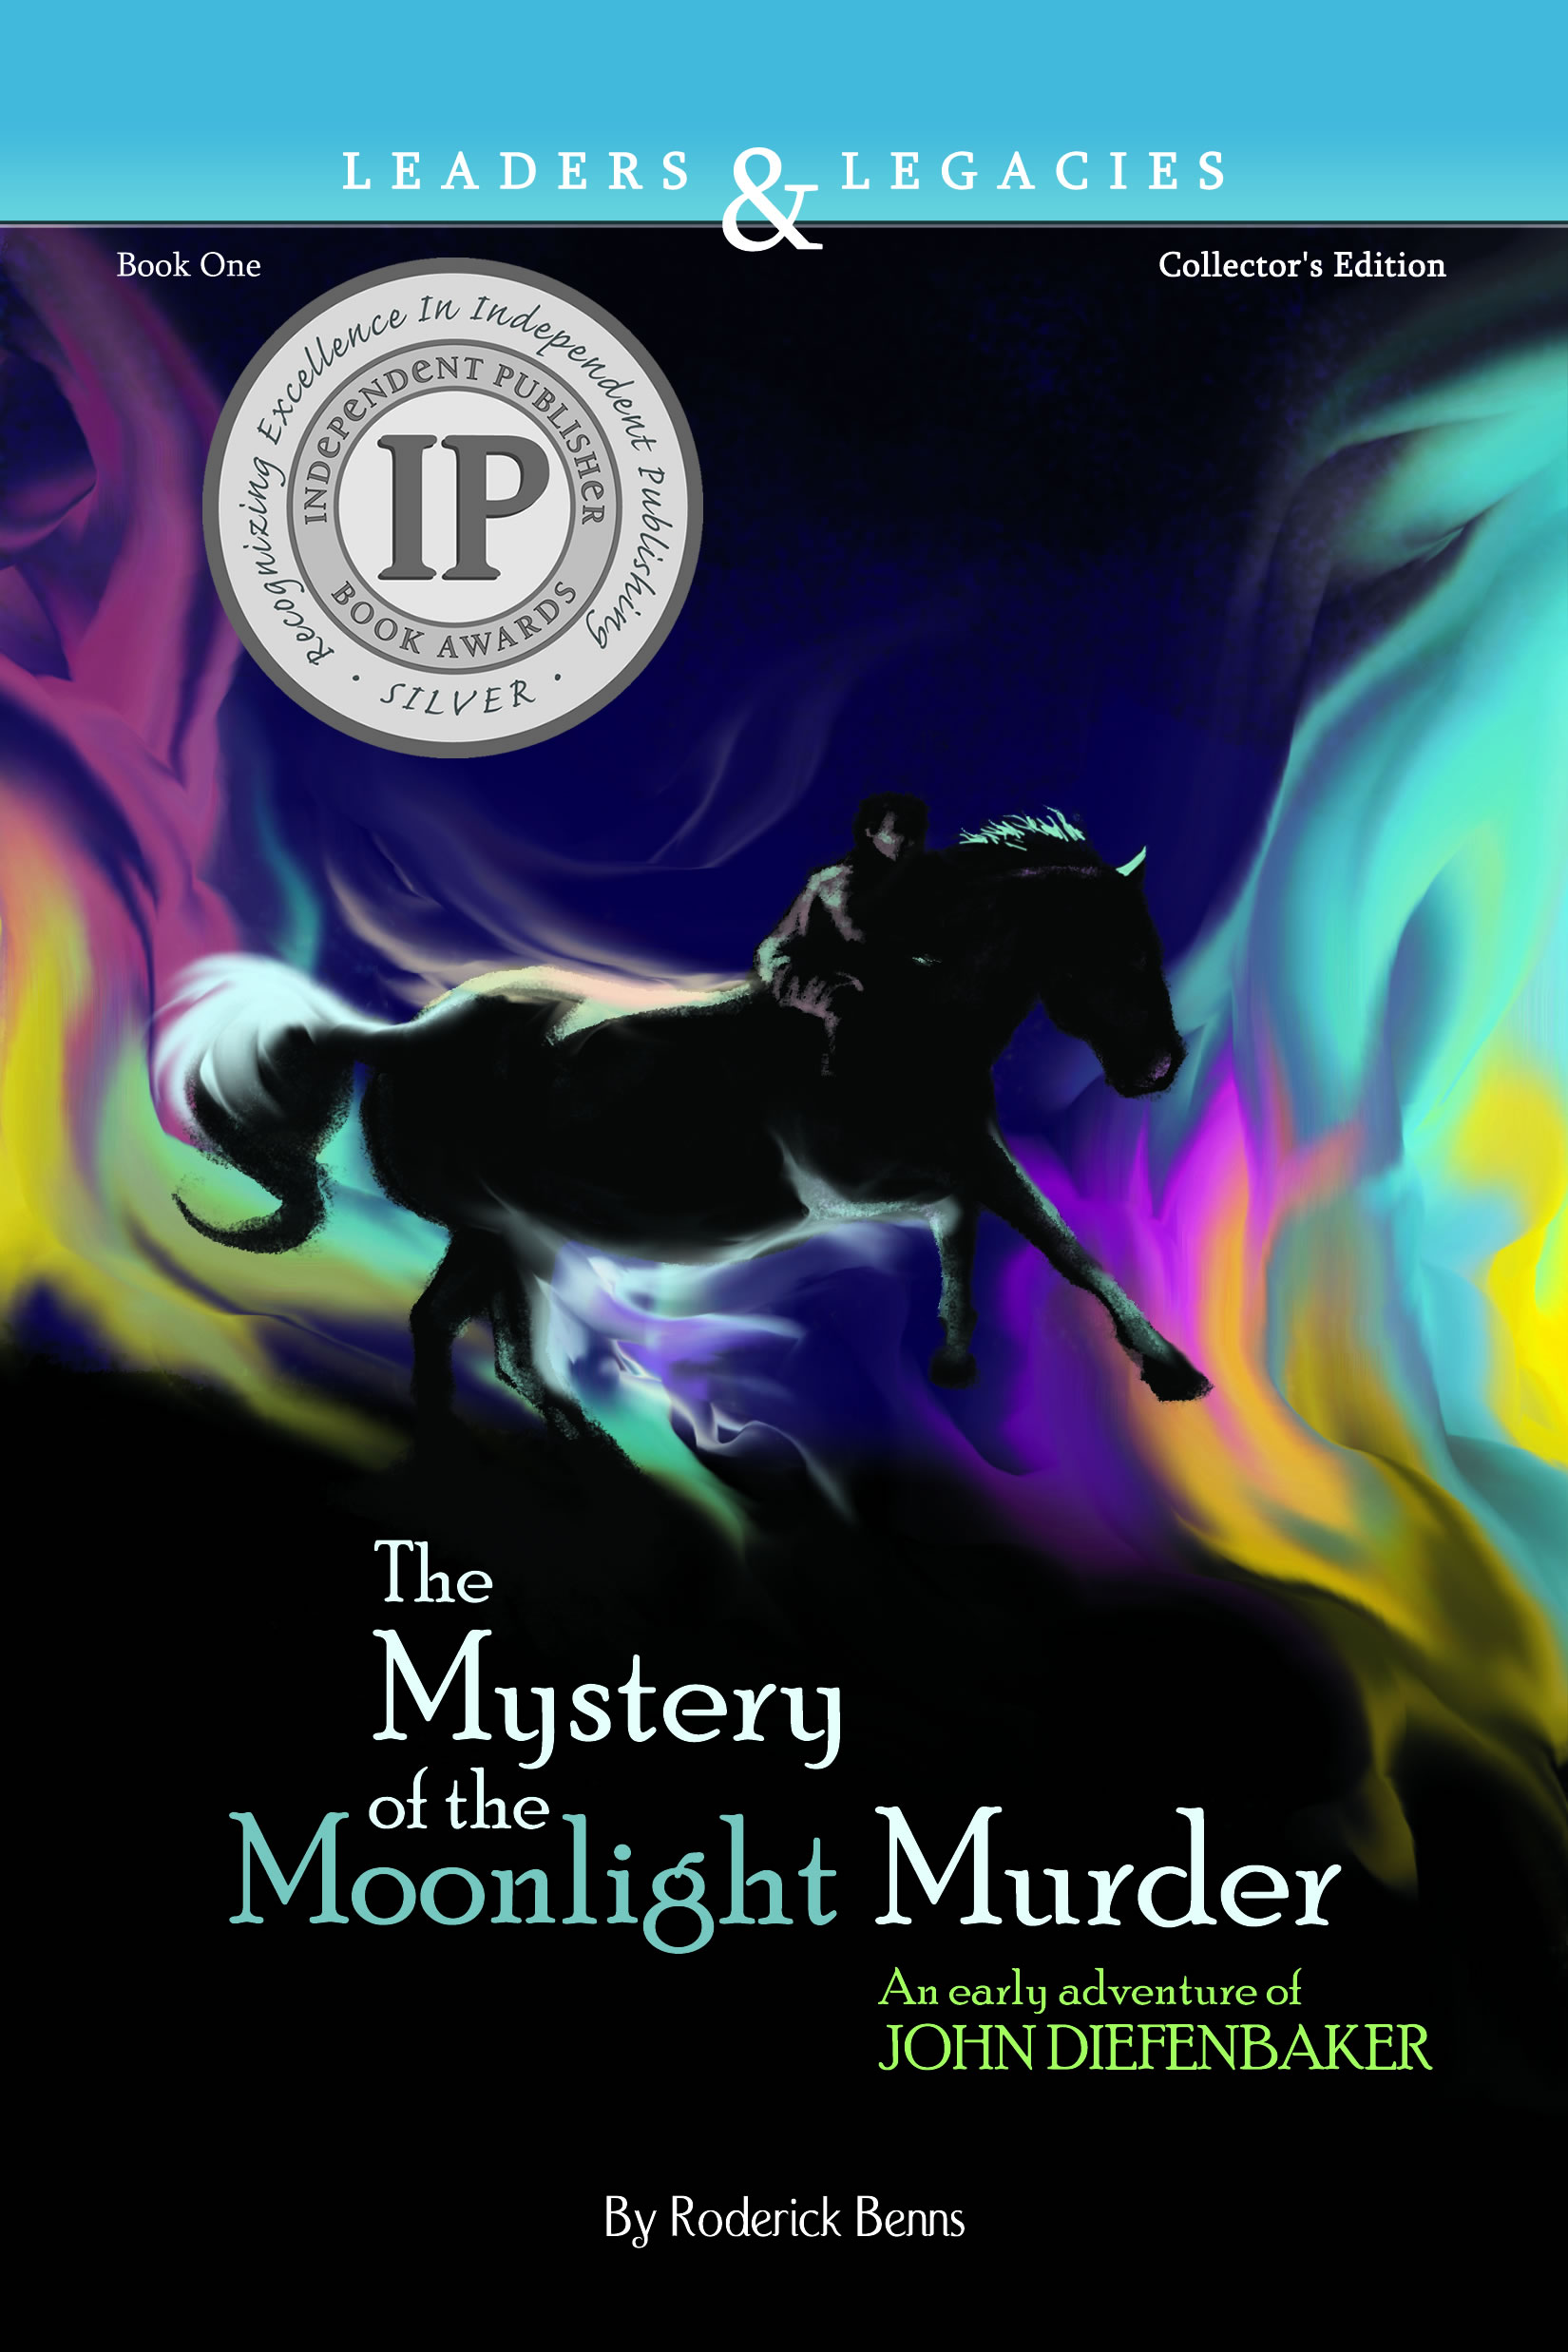 The Mystery of the Moonlight Murder: An Early Adventure of John Diefenbaker